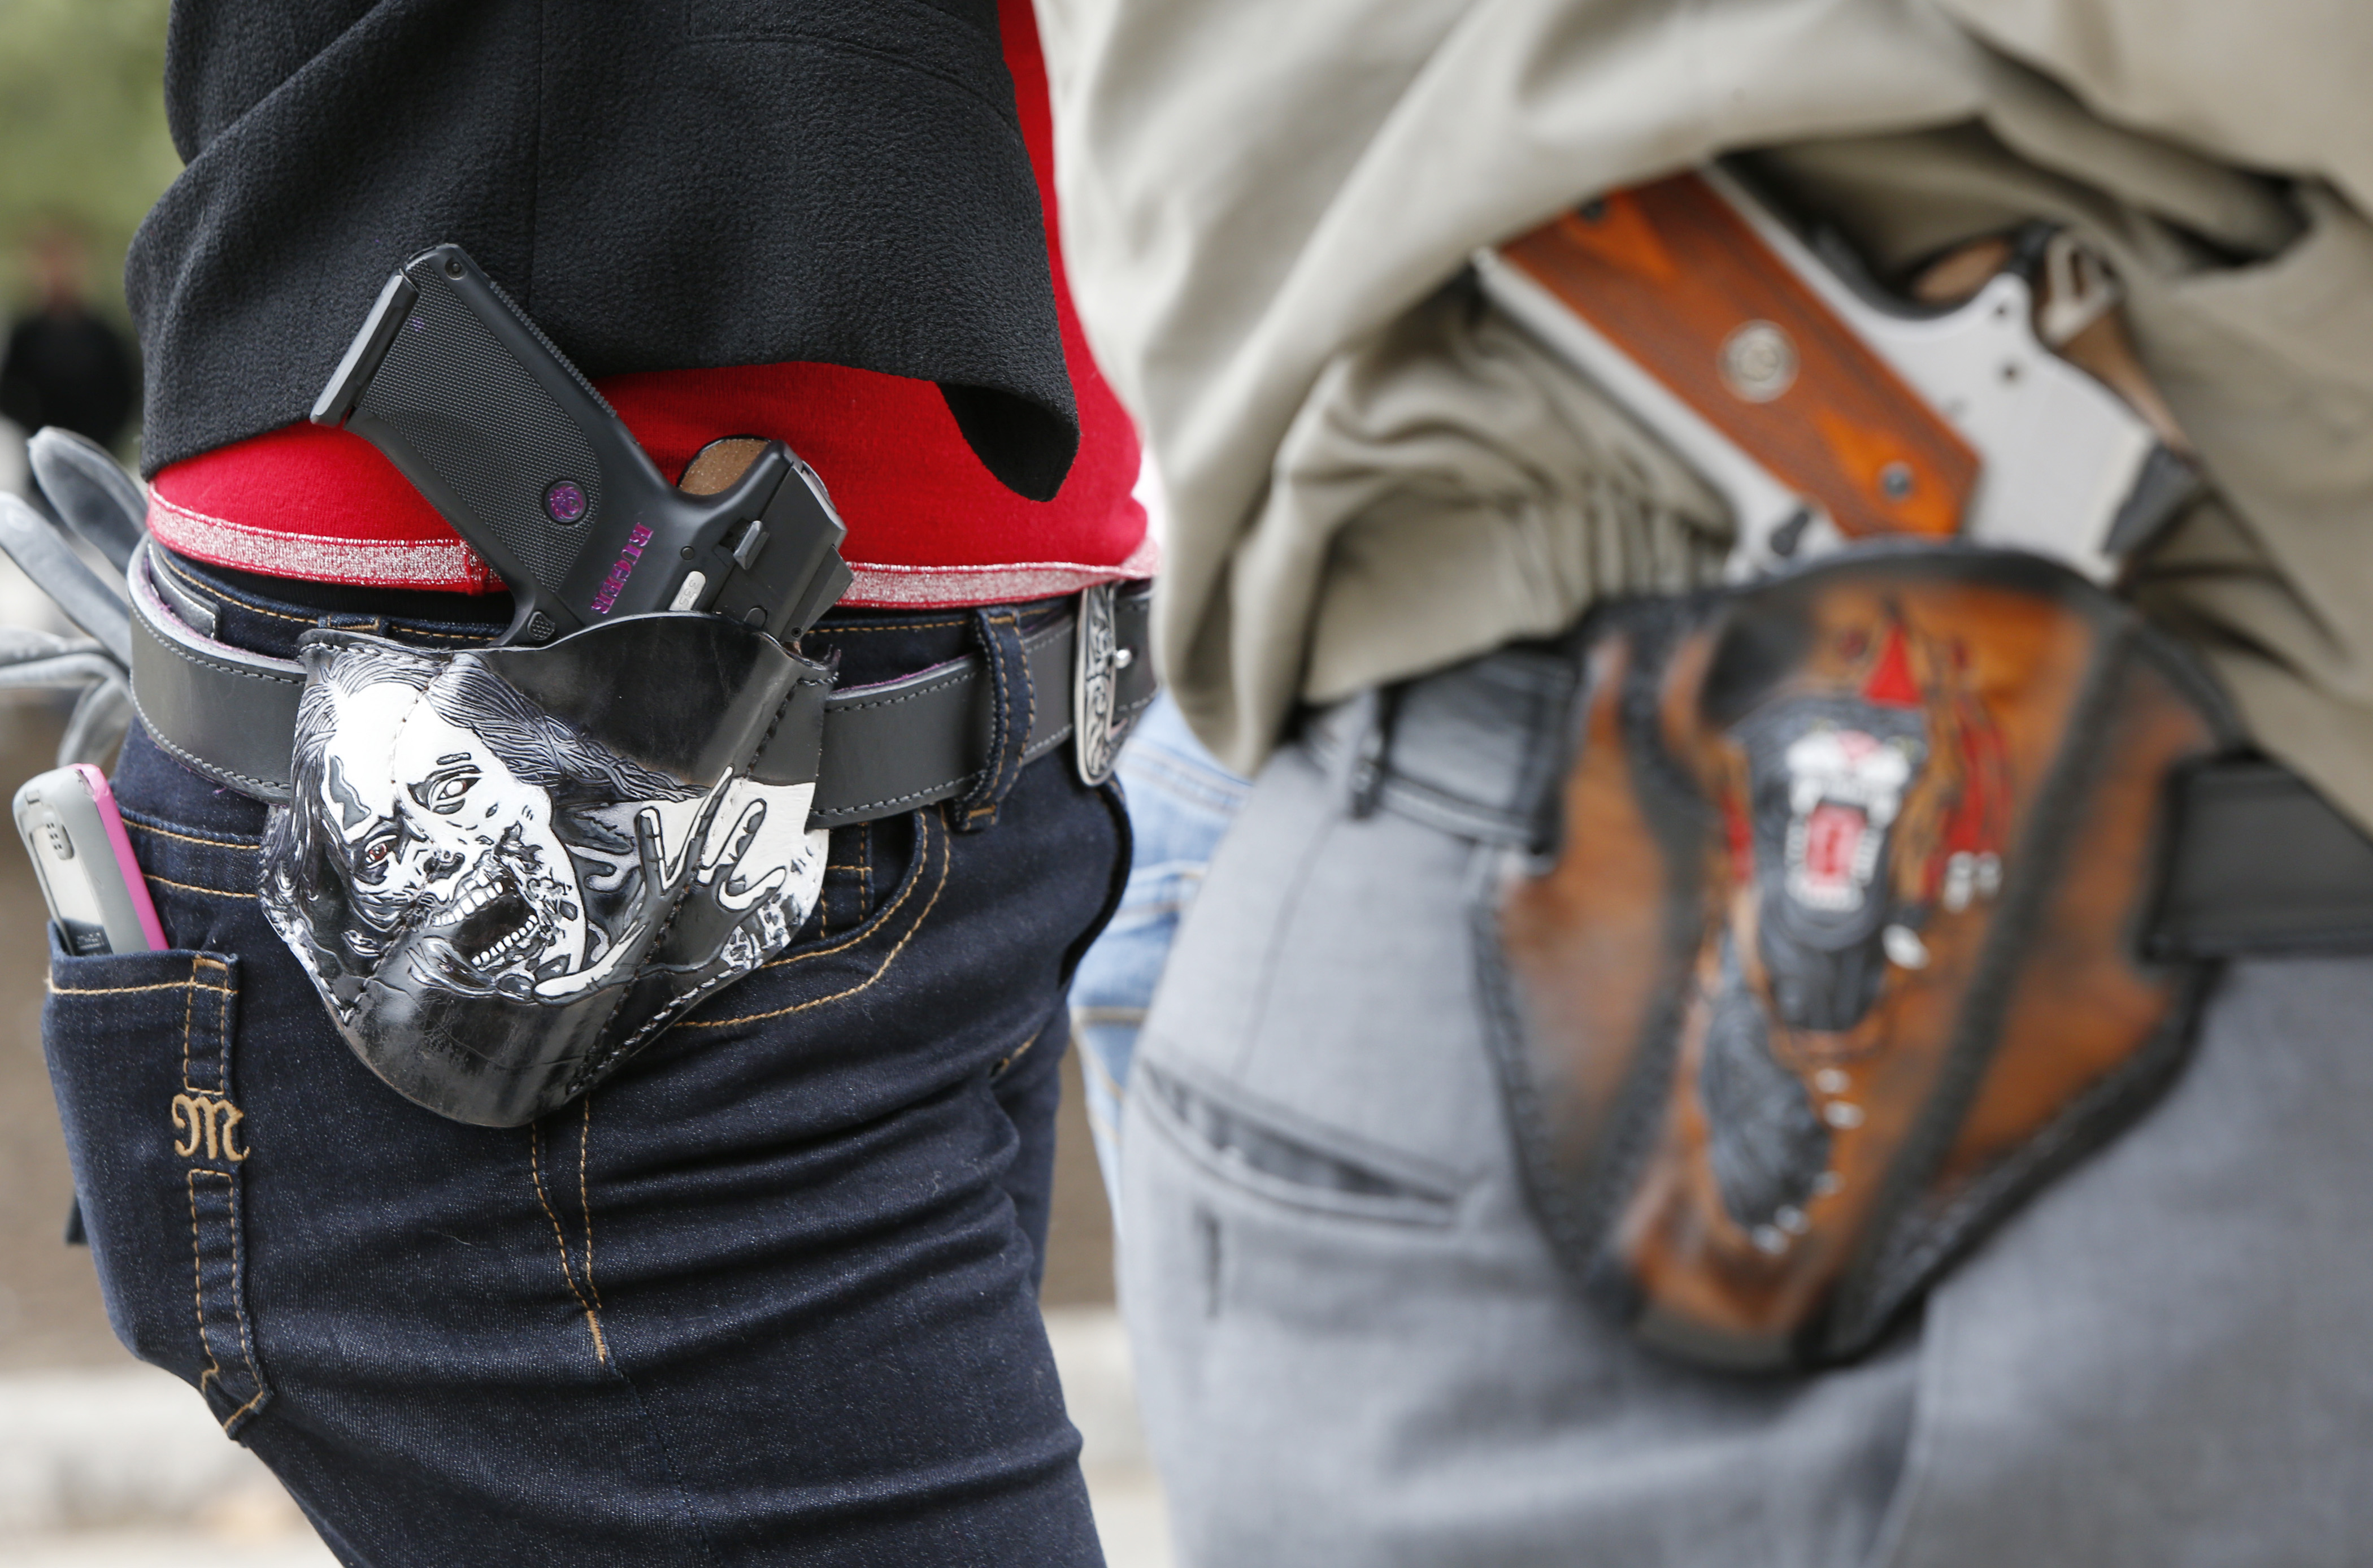 AUSTIN, TX - JANUARY 1: Art and Diana Ramirez of Austin with their pistols in custom-made holsters during and open carry rally at the Texas State Capitol on January 1, 2016 in Austin, Texas. On January 1, 2016, the open carry law takes effect in Texas, and 2nd Amendment activists hold an open carry rally.